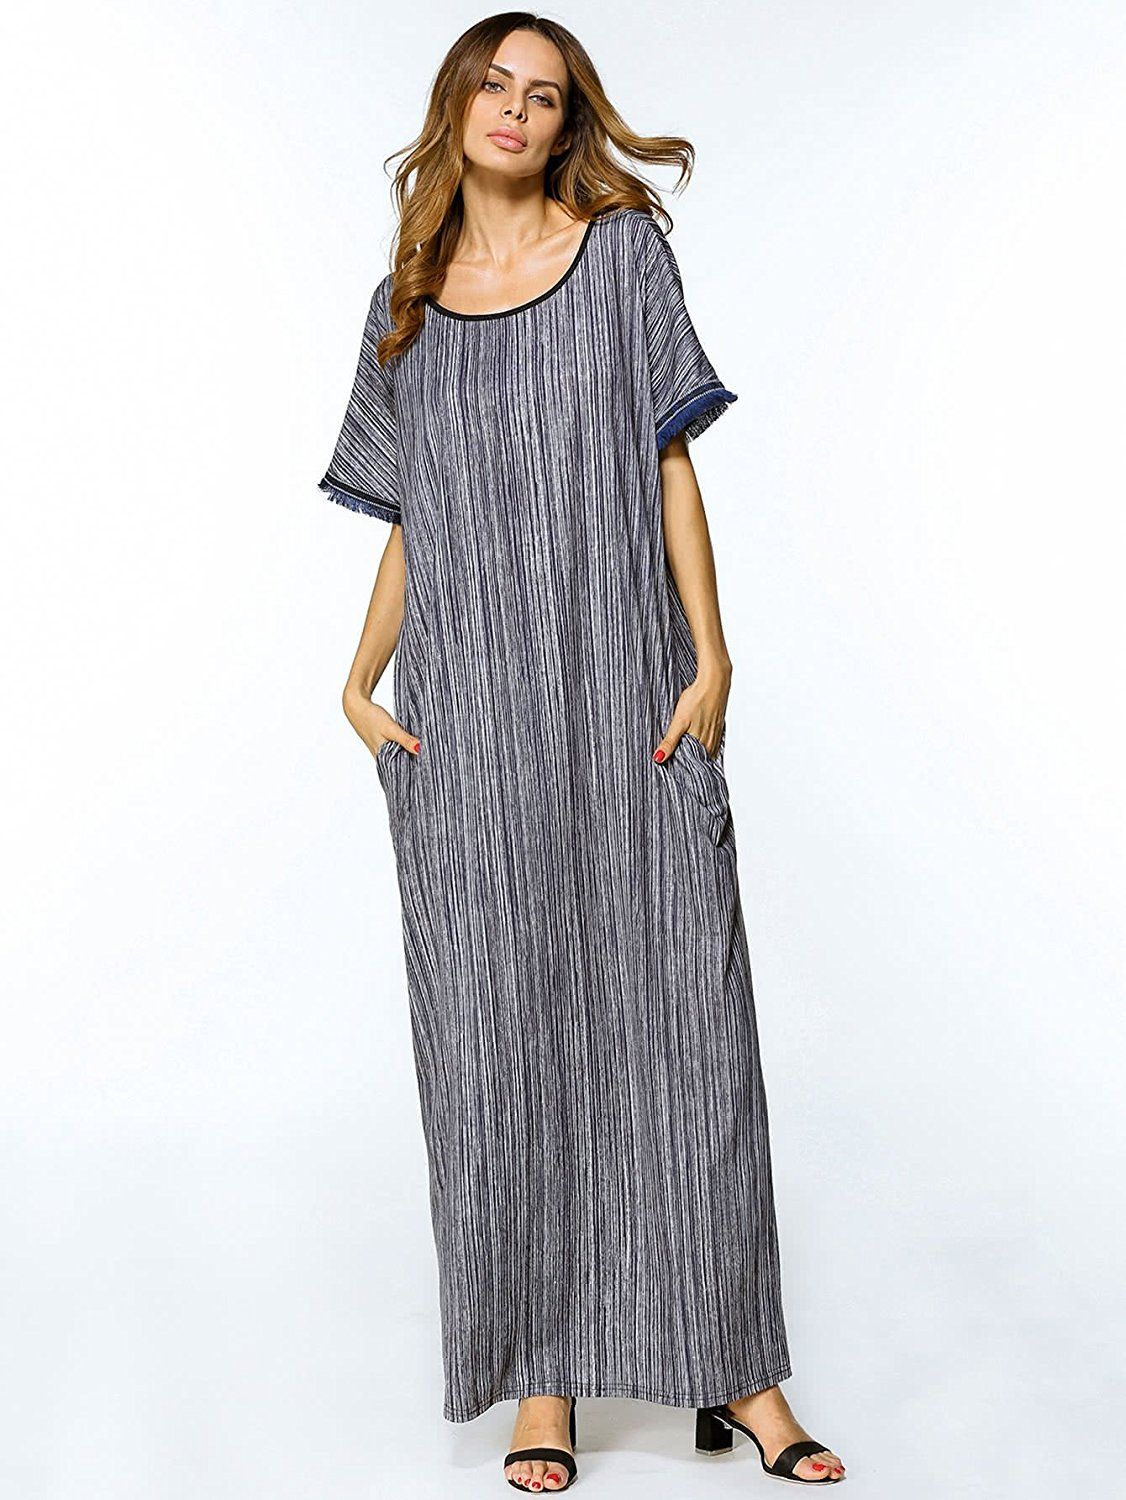 746e72f8cc7 Verdusa Women s Summer Round Neck Short Sleeve Long Maxi Dress with Pocket  Grey L at Amazon Women s Clothing store